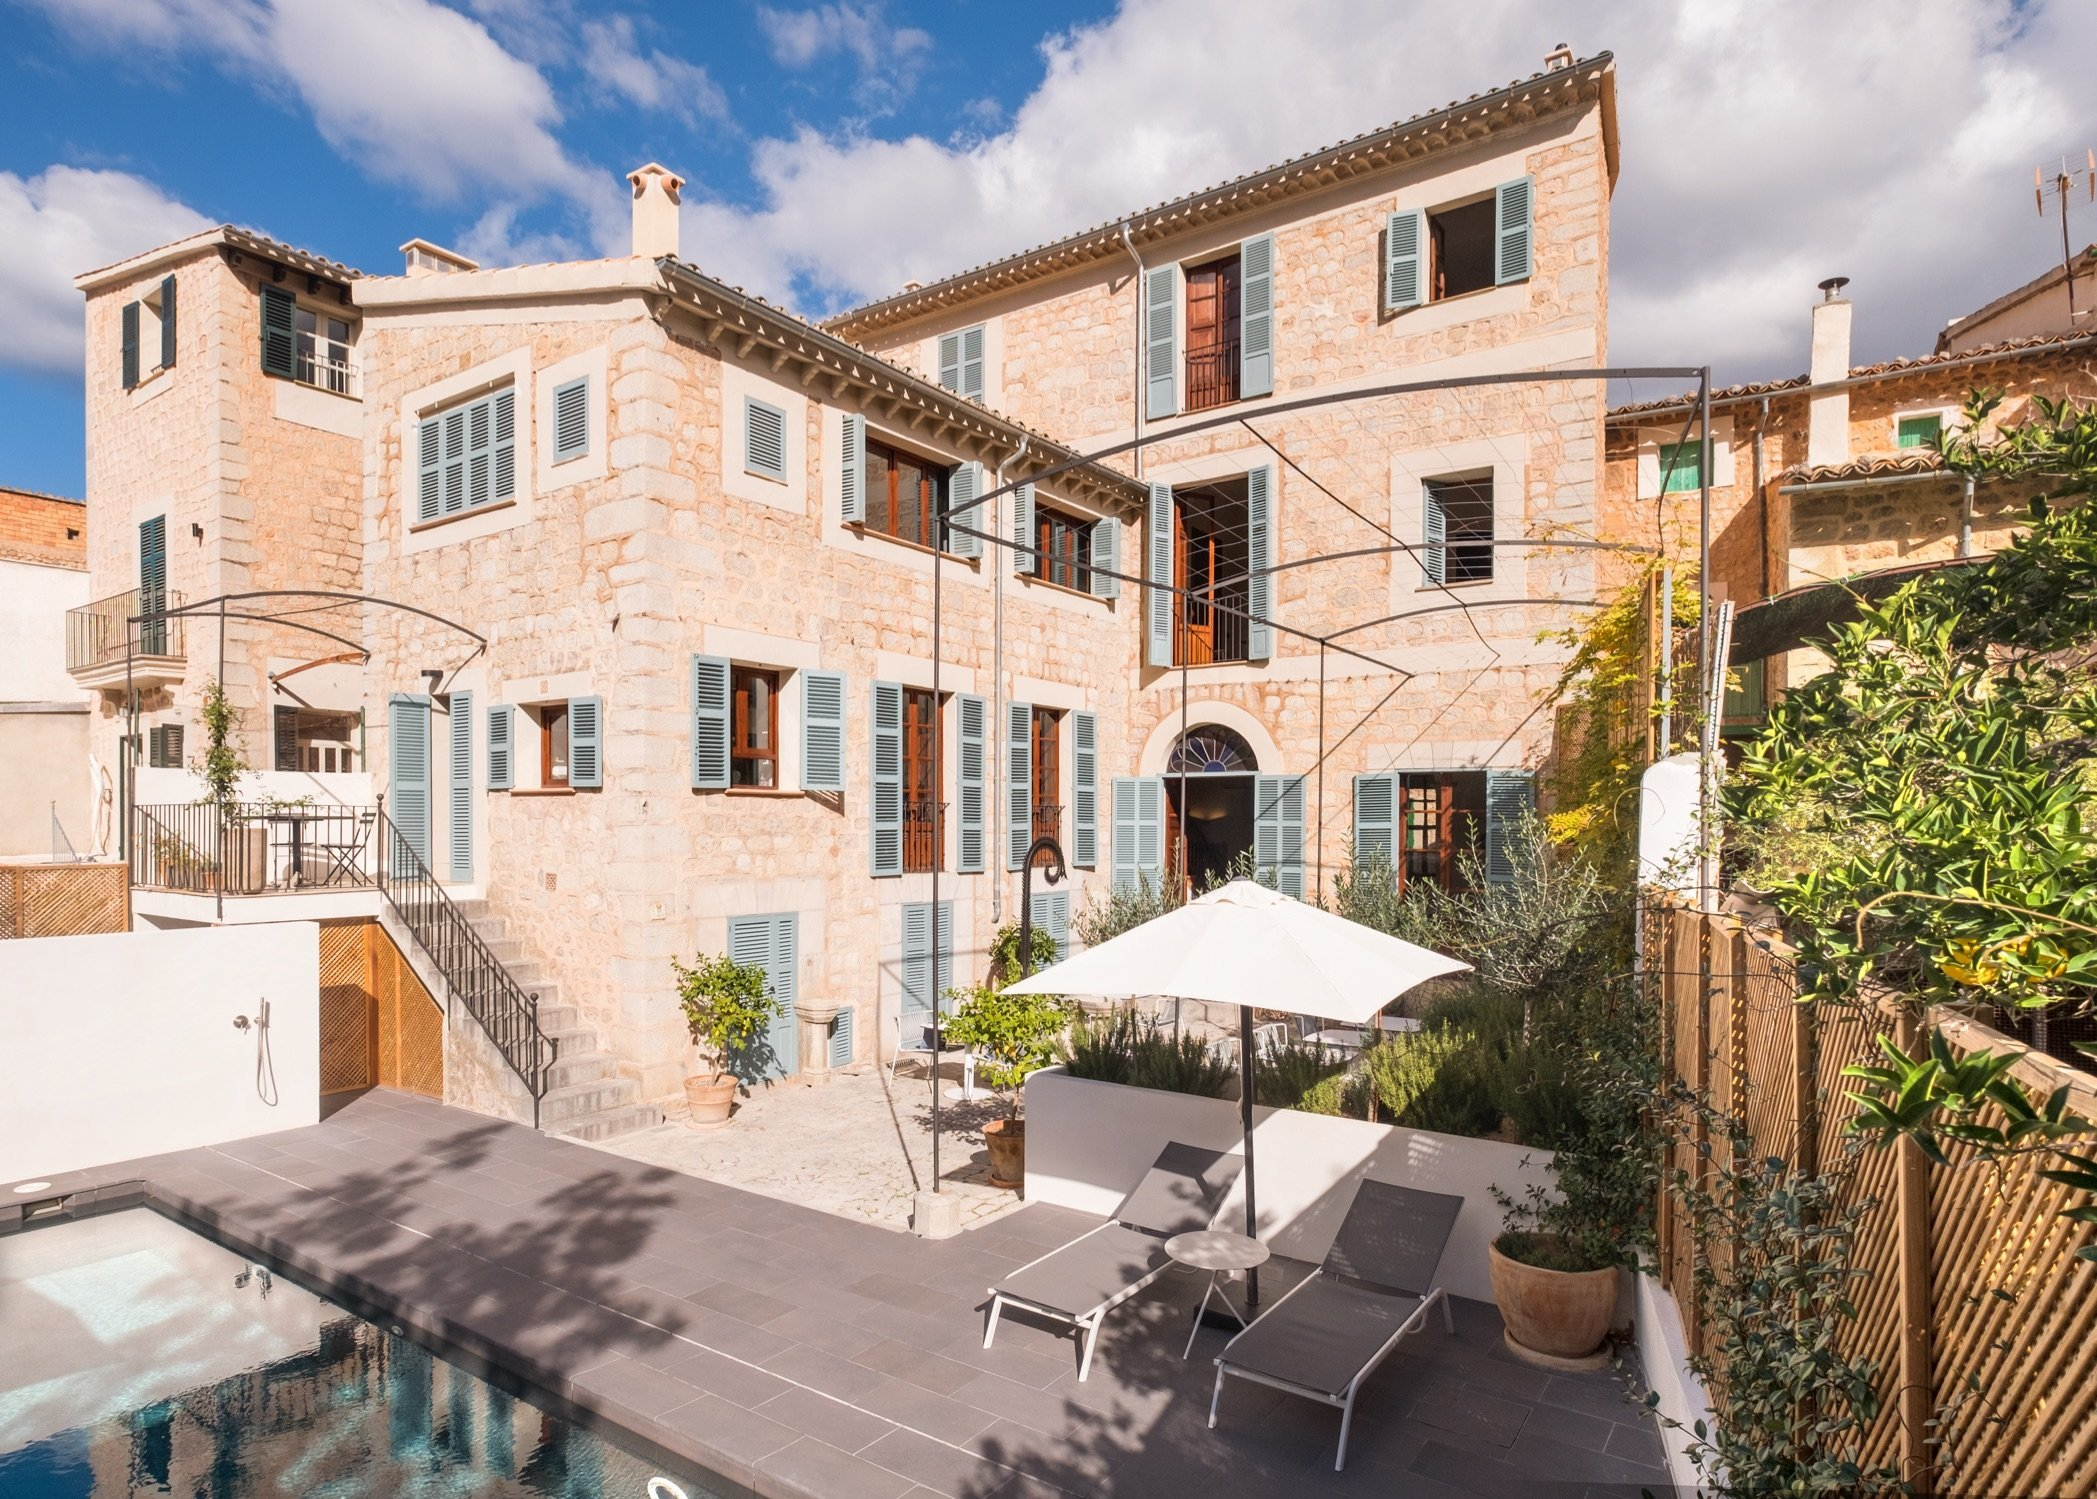 1902 TownHouse - Luxury Hotels - MallorcanTonic - Pool Area